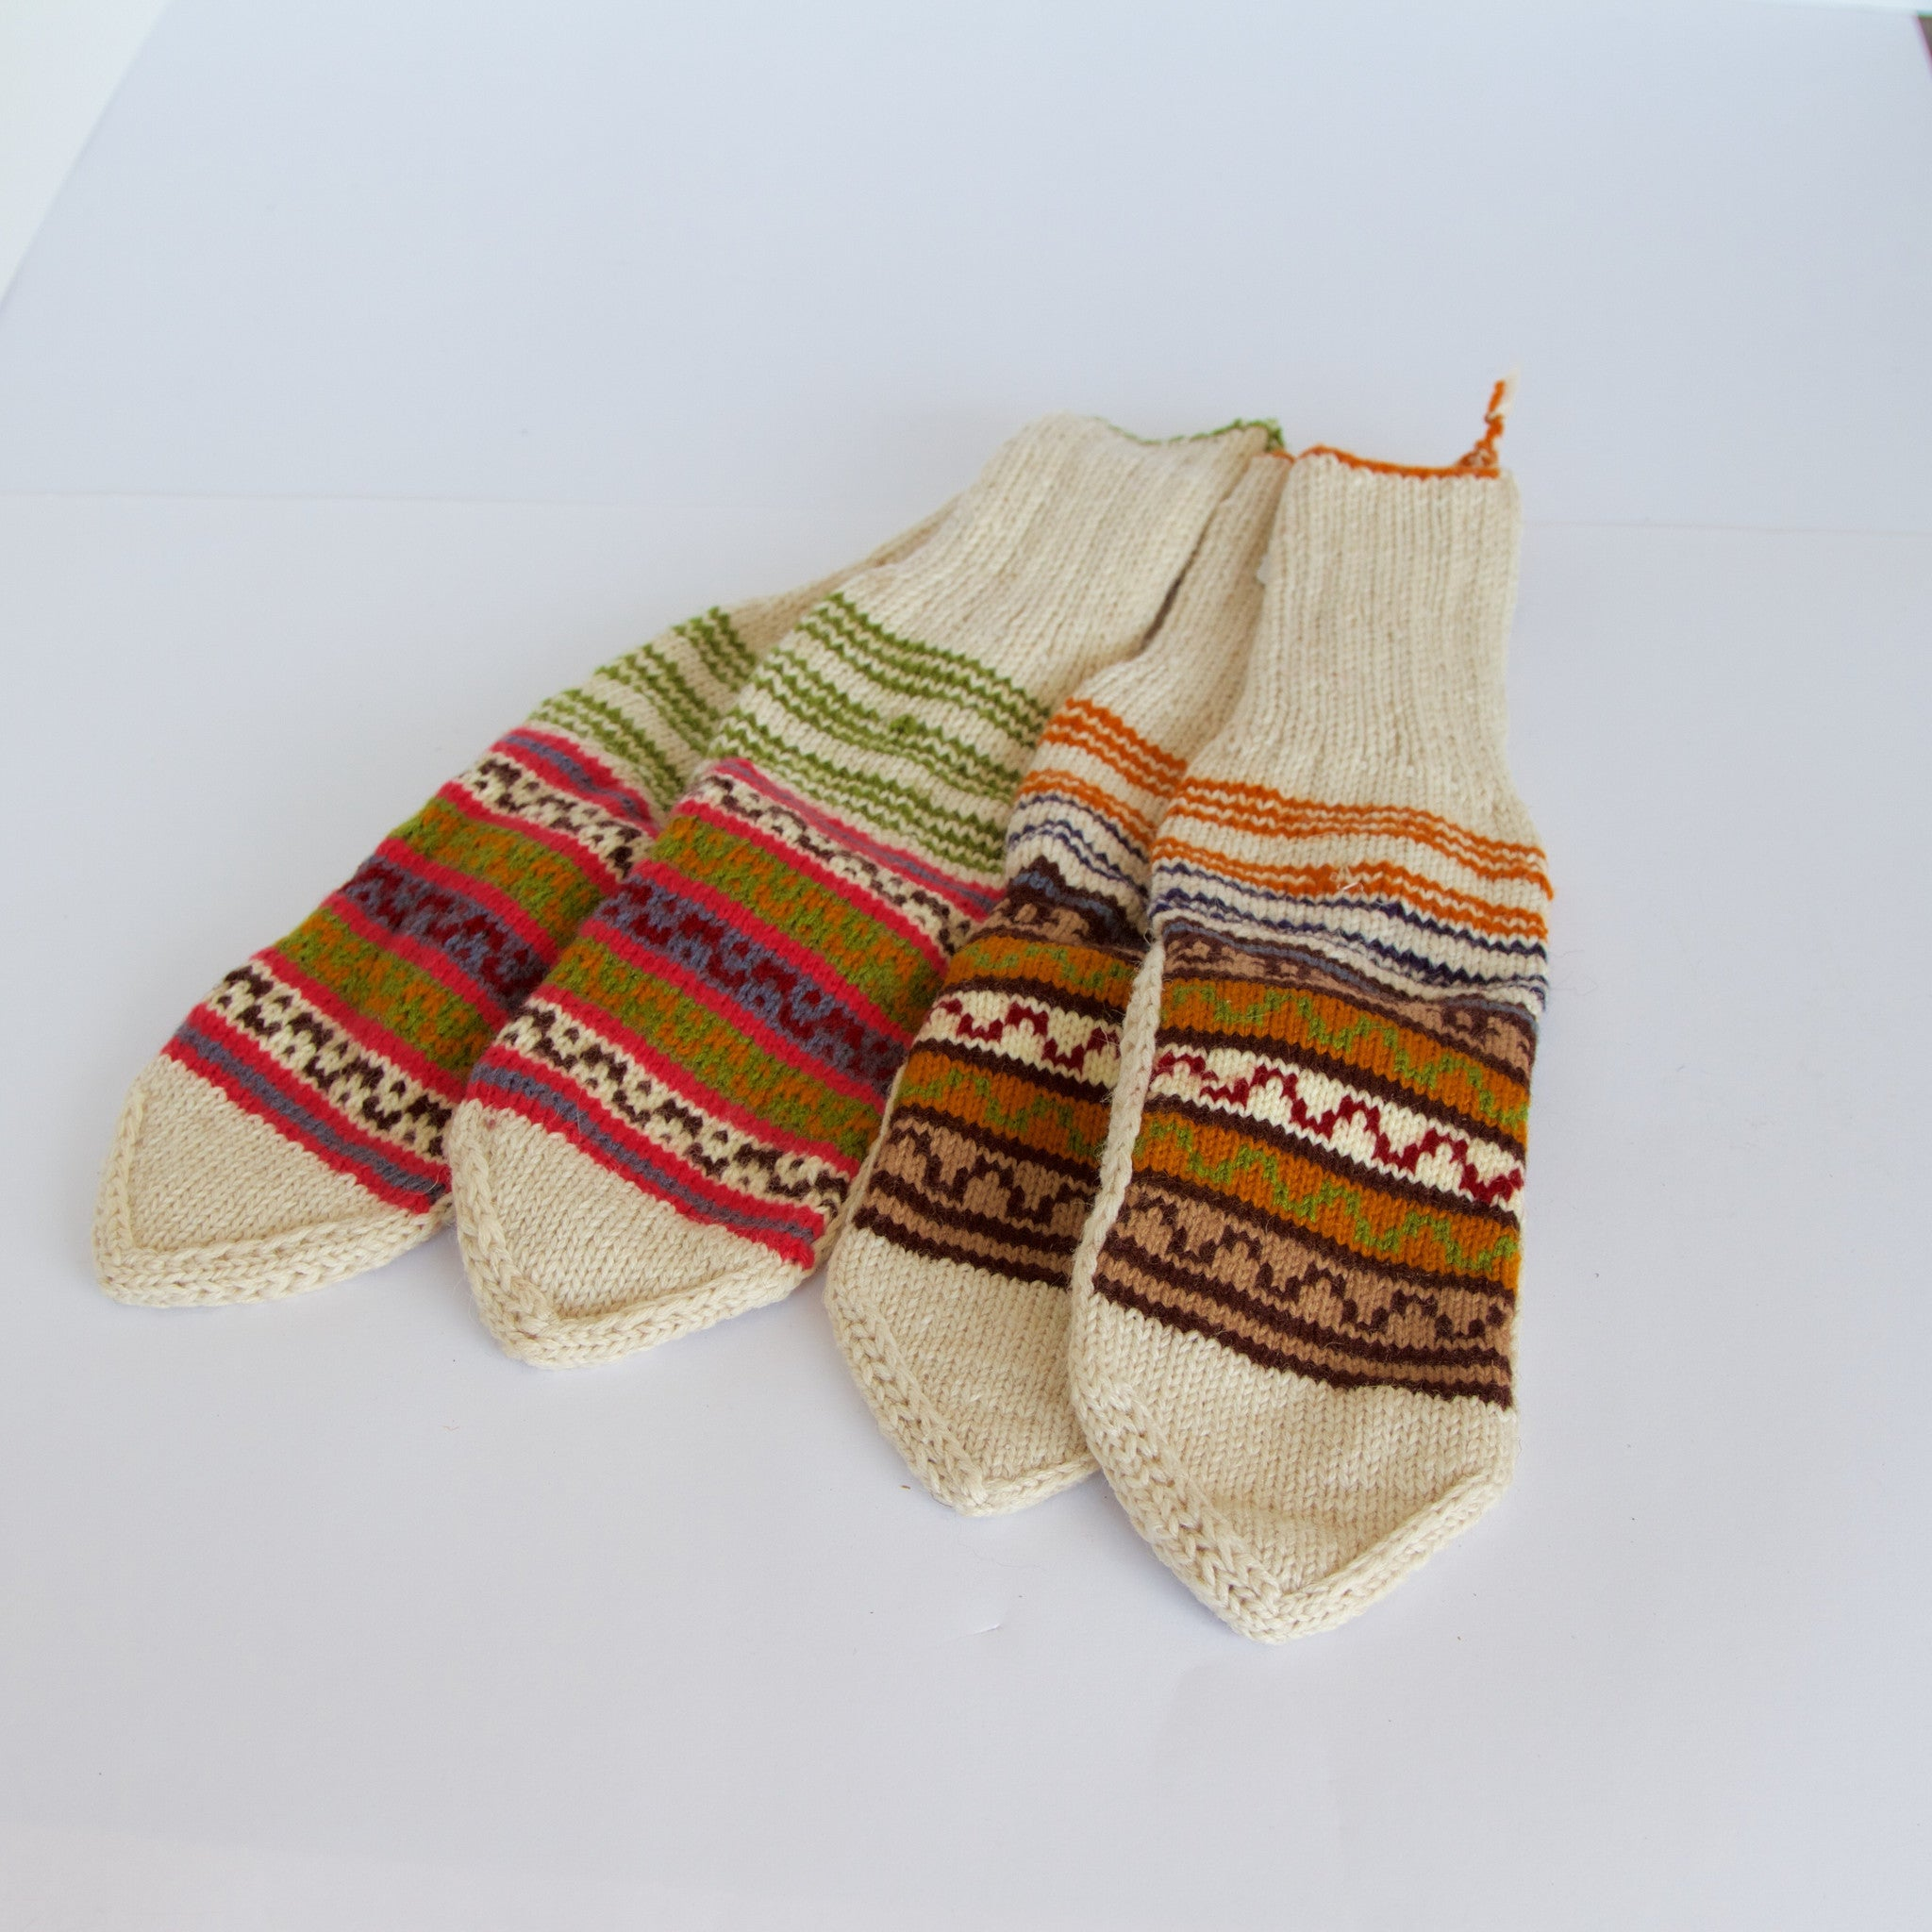 Himalayan Hand-Knitted Woollen Socks